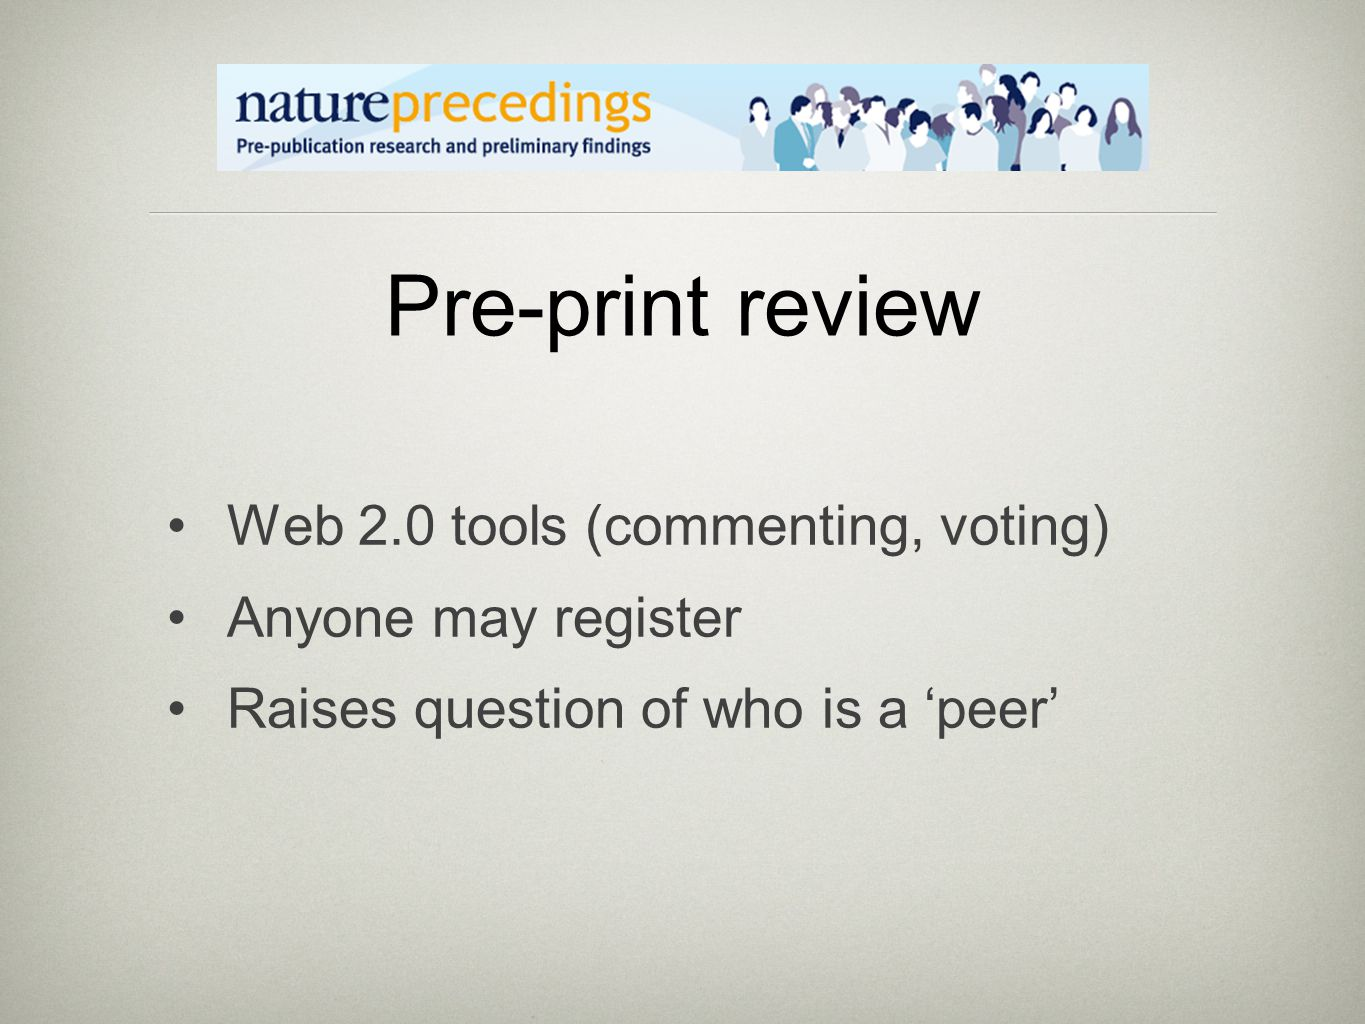 Pre-print review Web 2.0 tools (commenting, voting) Anyone may register Raises question of who is a 'peer'